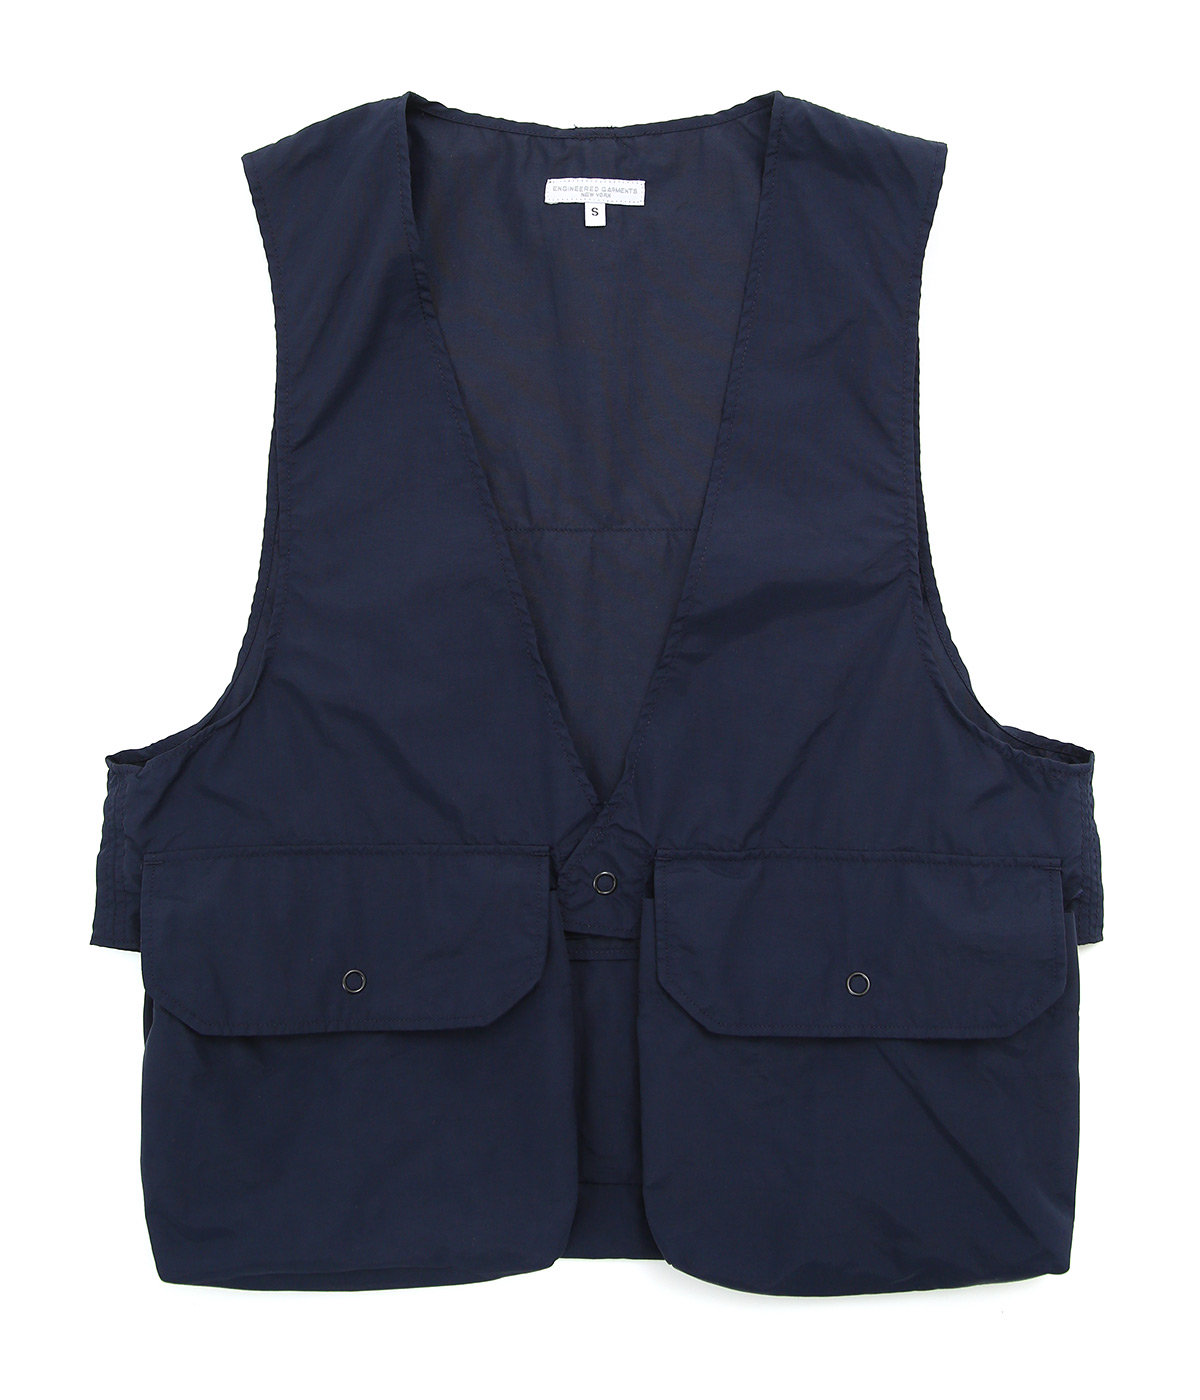 Fowl Vest - Acrylic Coated Nylon Taffeta